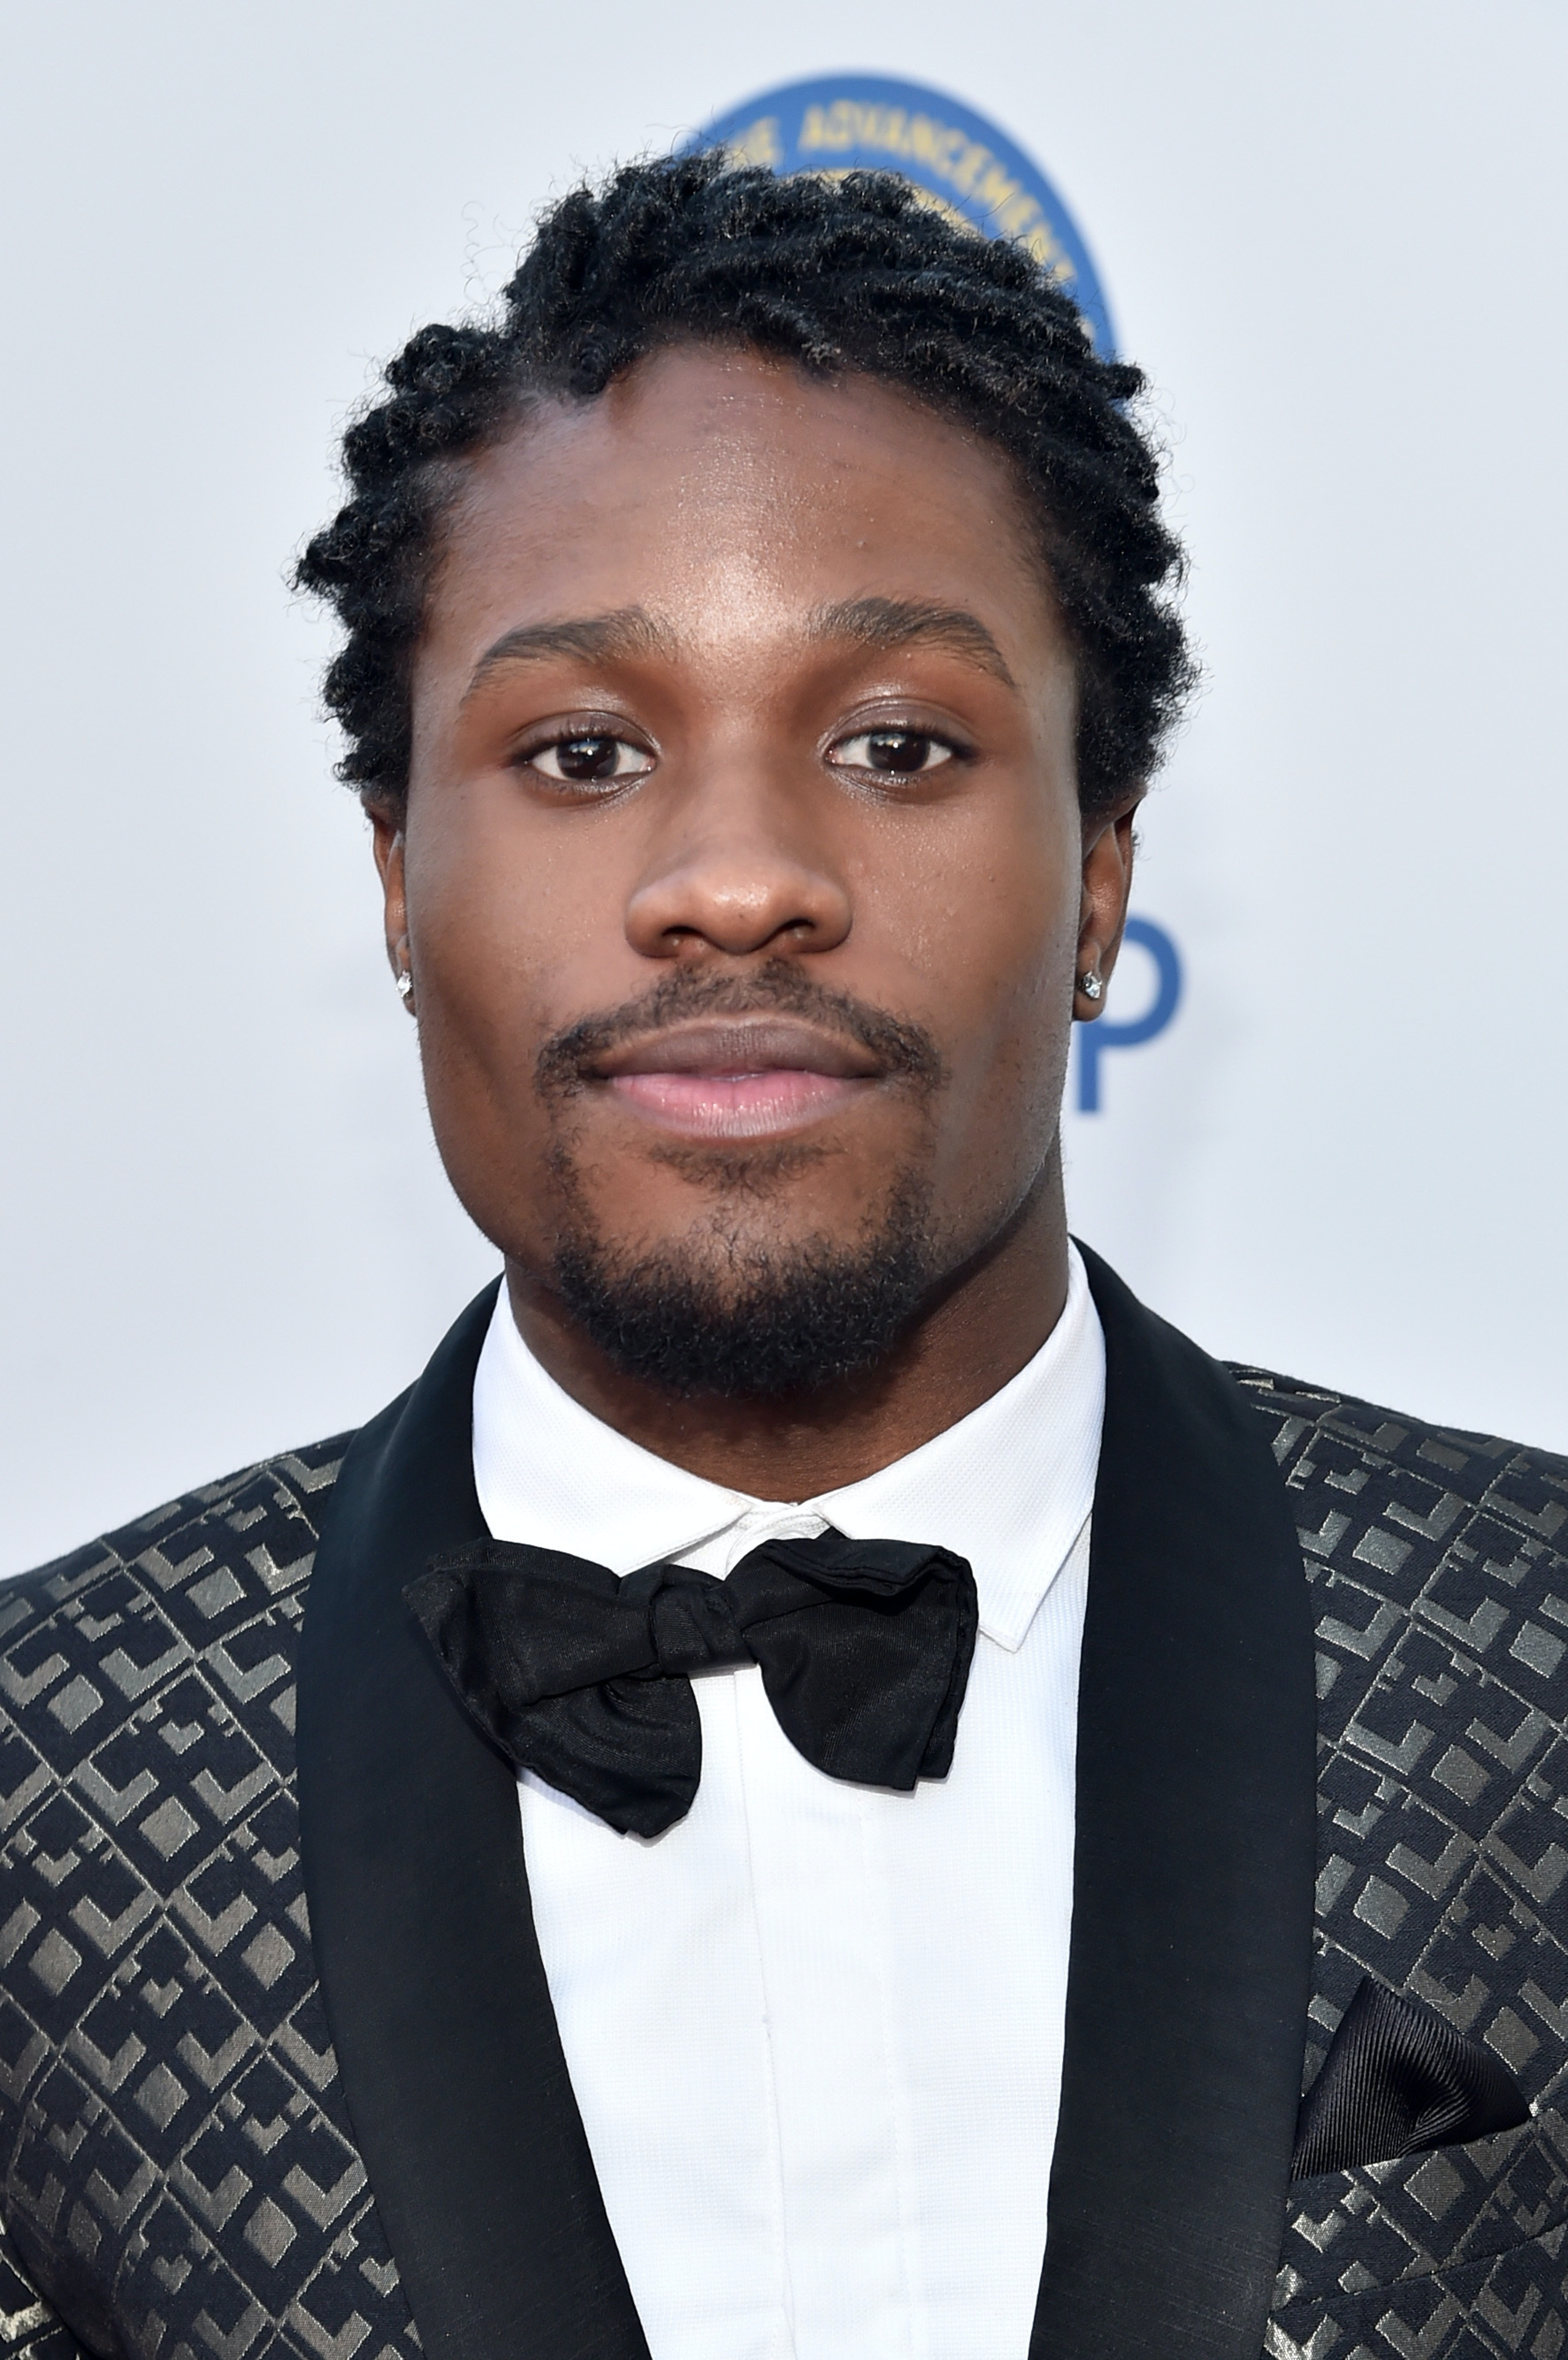 PASADENA, CA - FEBRUARY 05:  Actor Shameik Moore attends the 47th NAACP Image Awards presented by TV One at Pasadena Civic Auditorium on February 5, 2016 in Pasadena, California.  (Photo by Alberto E. Rodriguez/Getty Images for NAACP Image Awards)